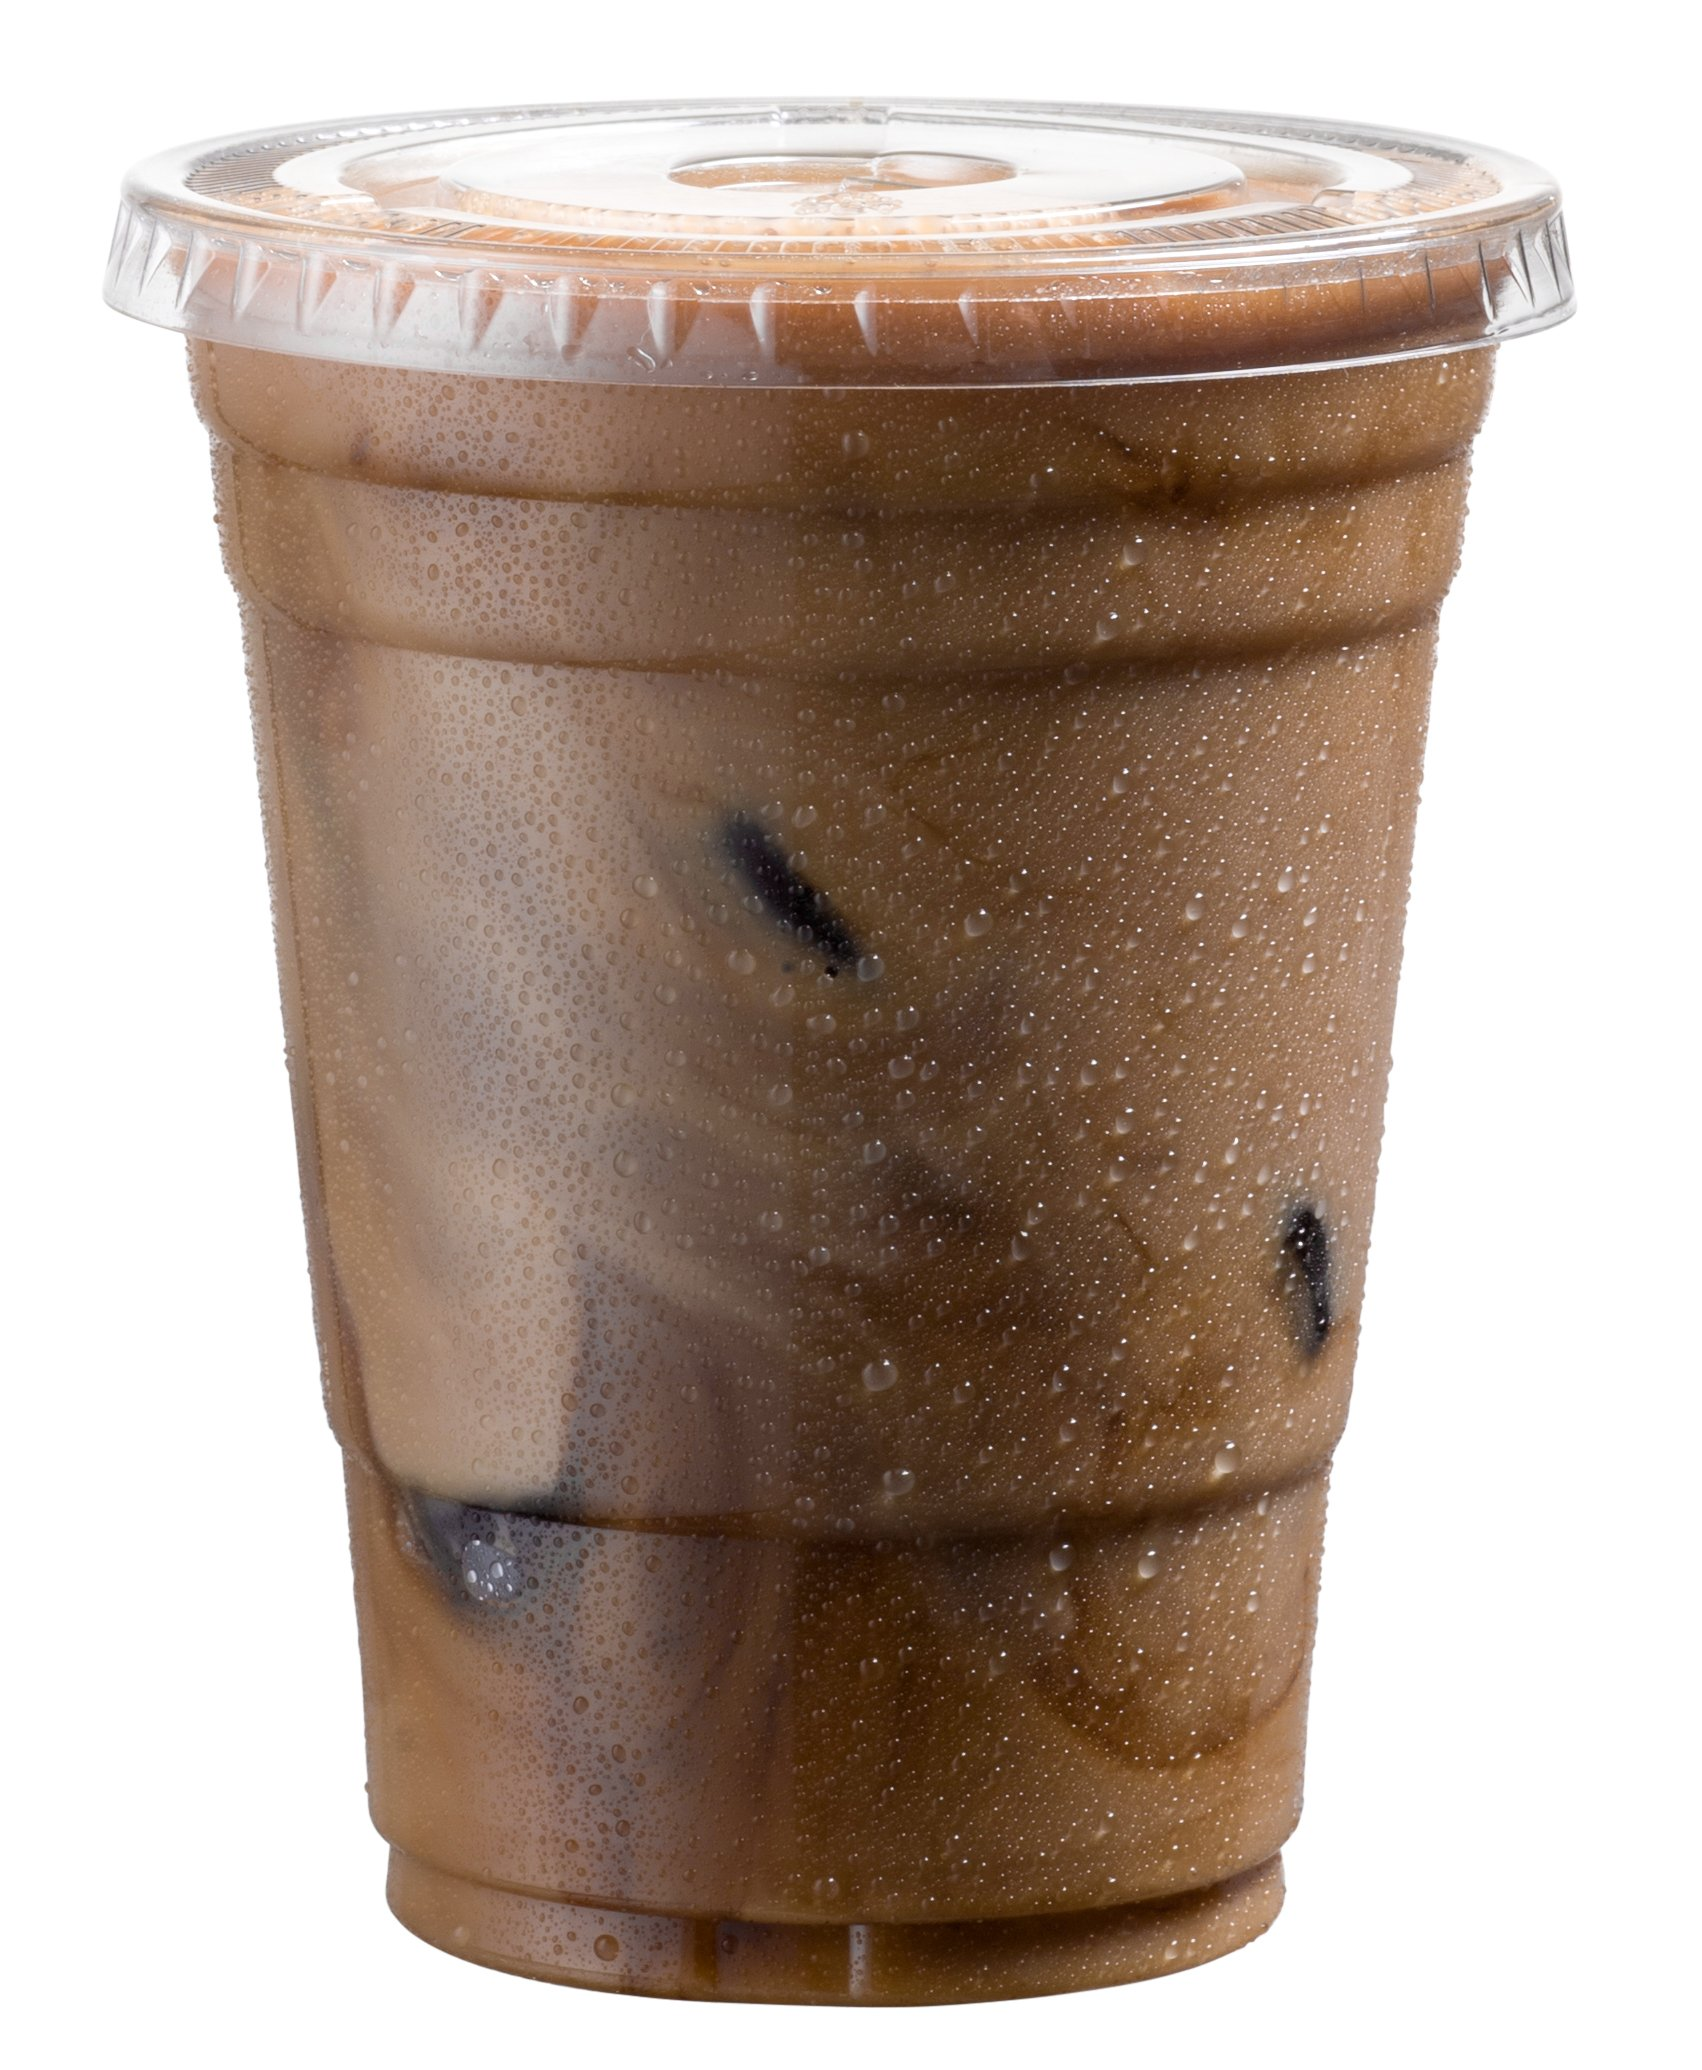 Cold Smoothie Go Cups and Lids | Iced Coffee Cups | Plastic Cups with Lids | 16 oz Cups, 50 Pack | Clear Disposable Pet Cups | Ideal for Bubble Tea Juice Soda Cocktail Party Cups [Drinket Collection]